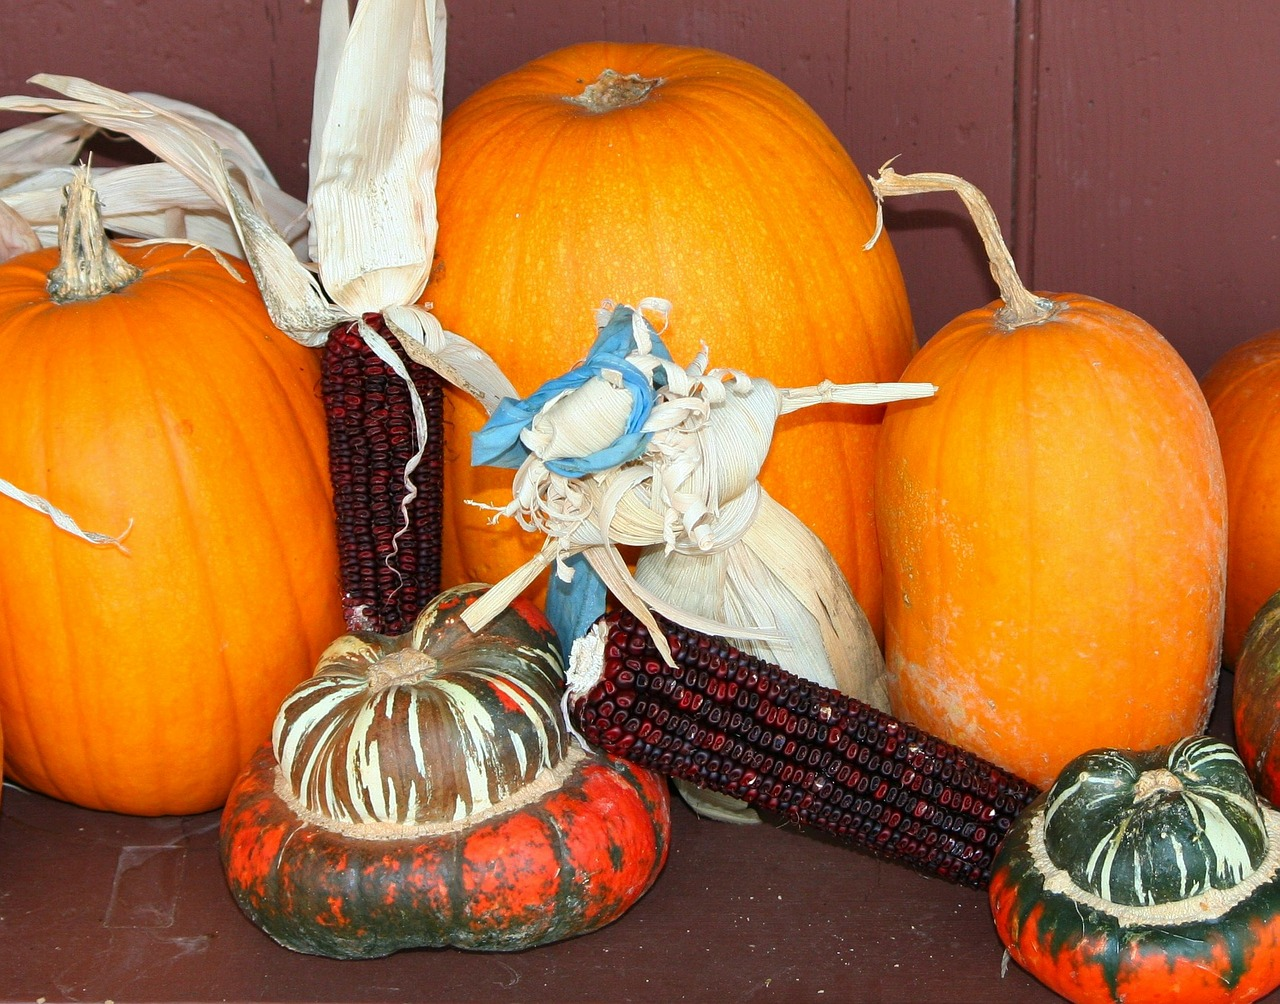 corn husk doll pumpkins gourds free photo